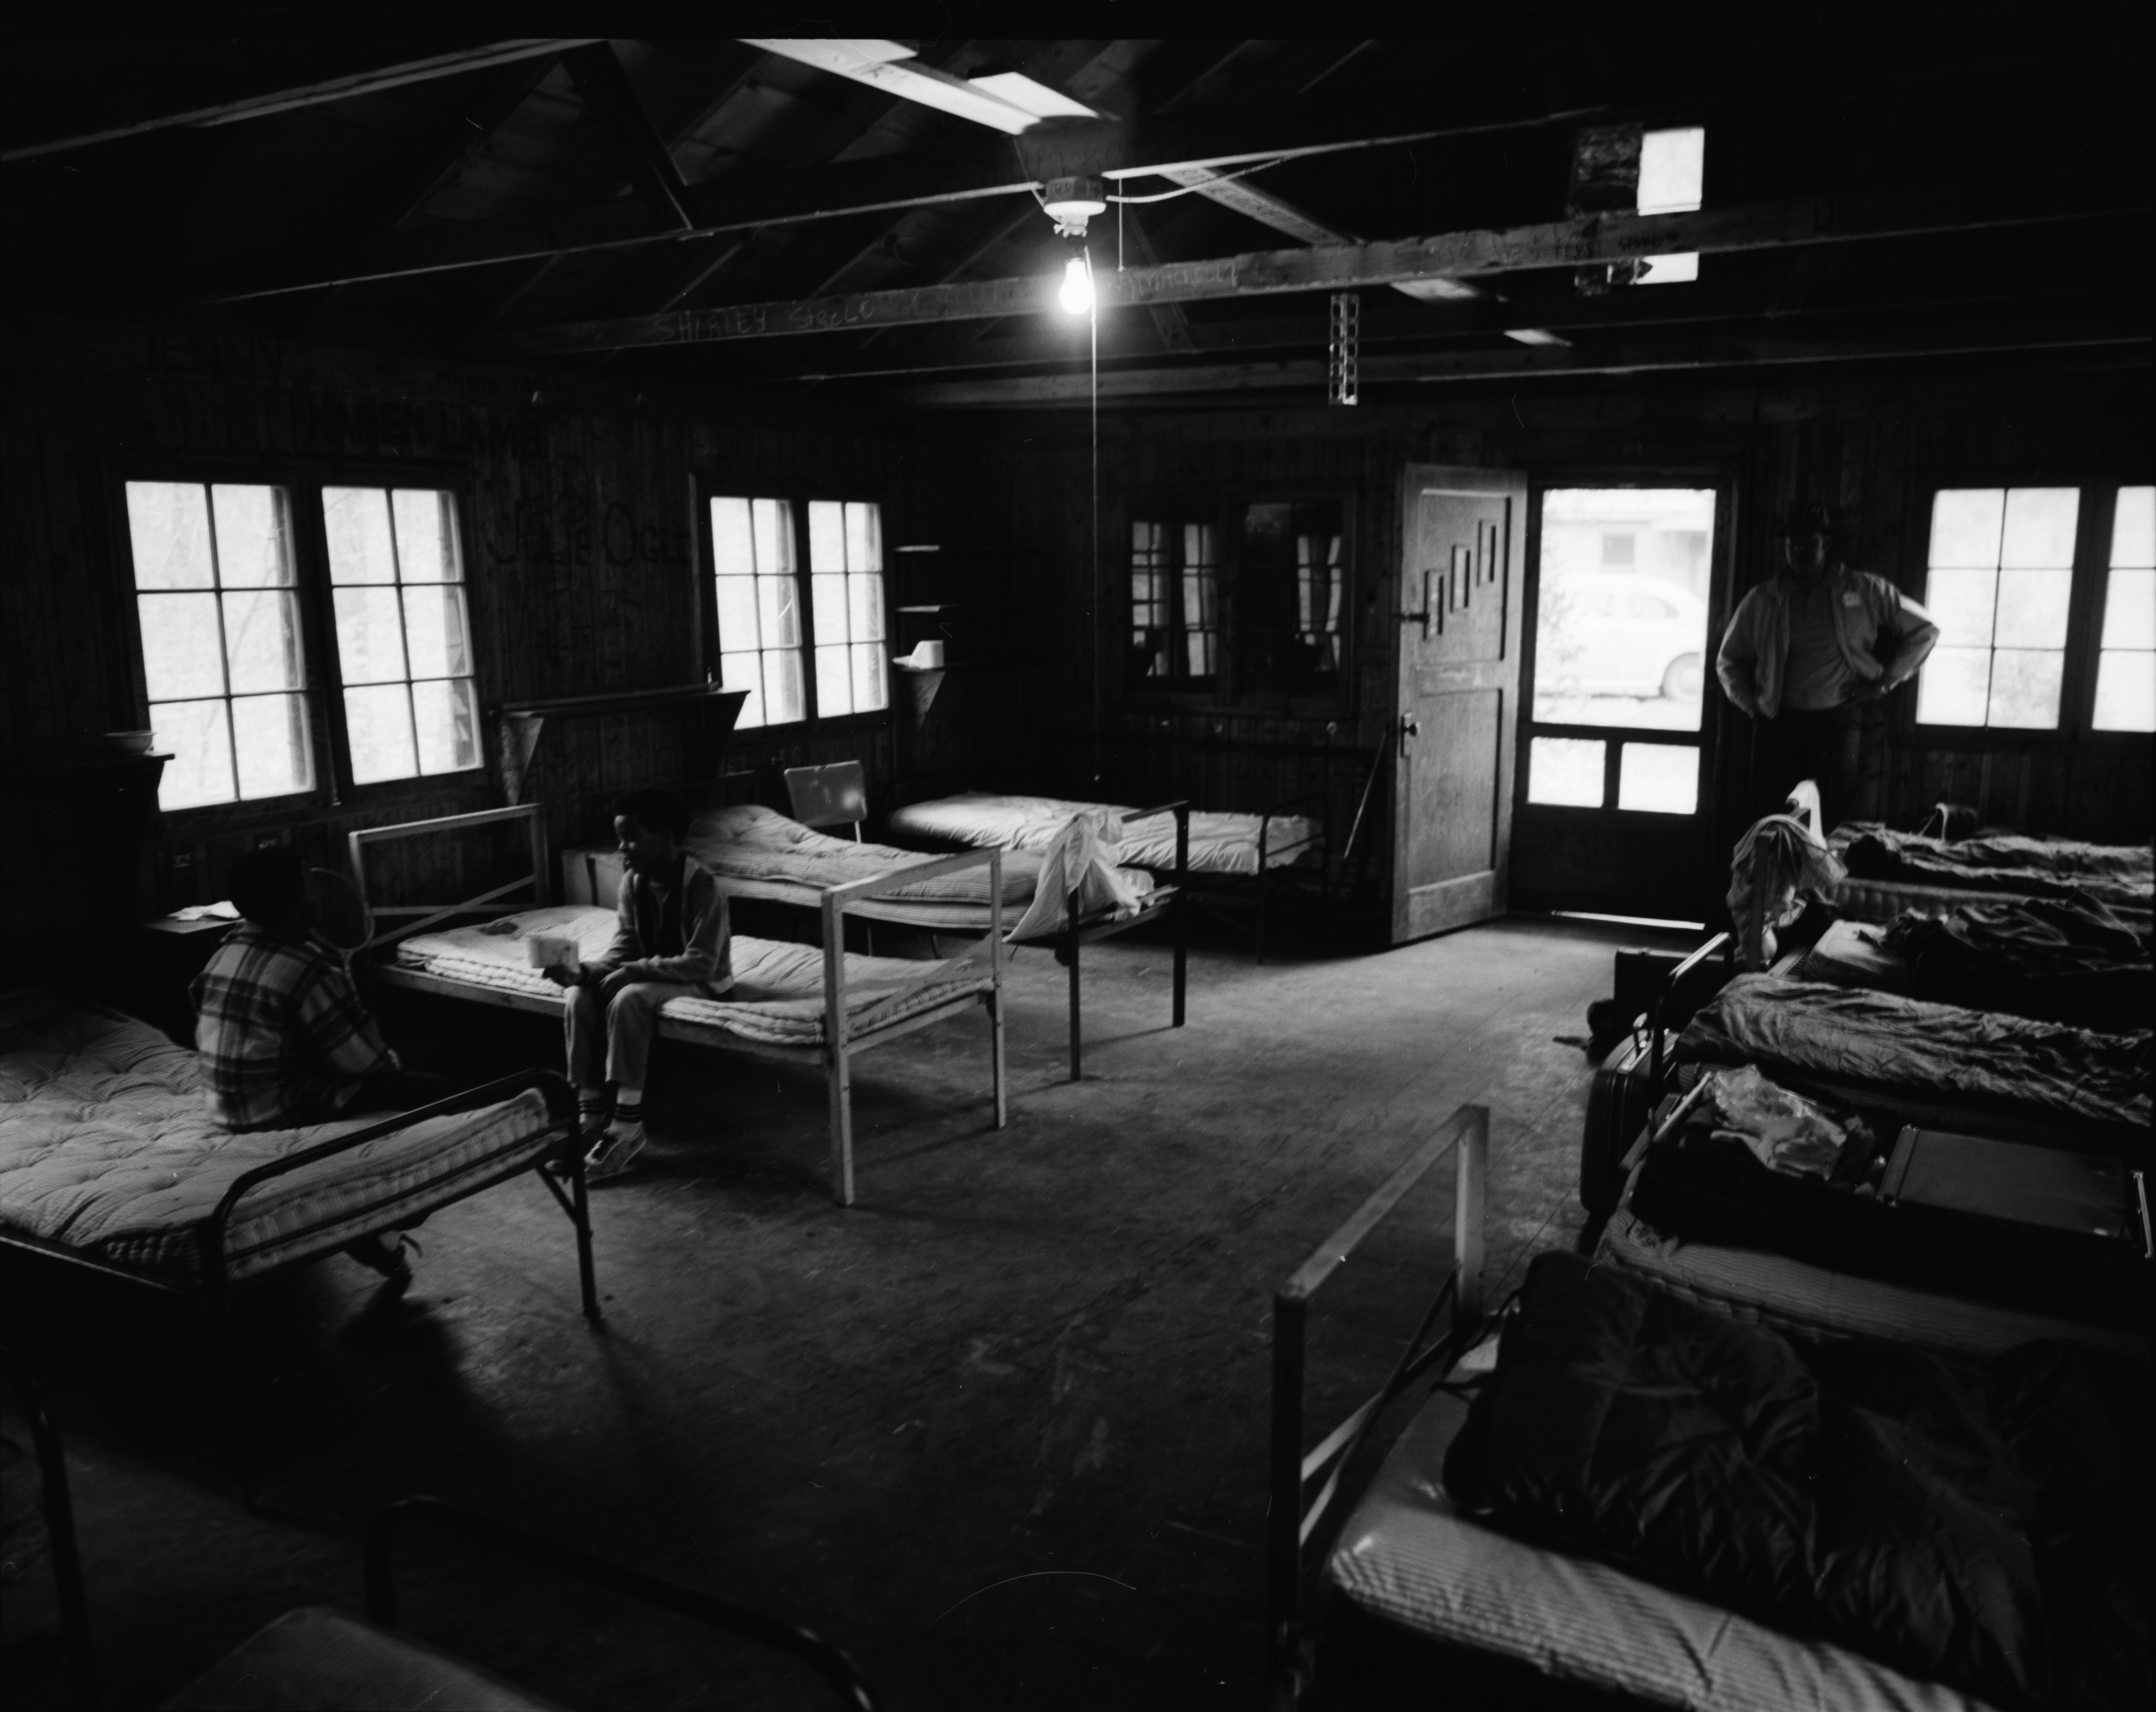 Interior View of Bunks in Cabin at the Ann Arbor Community Center's Camp Takona, June 1972	 image